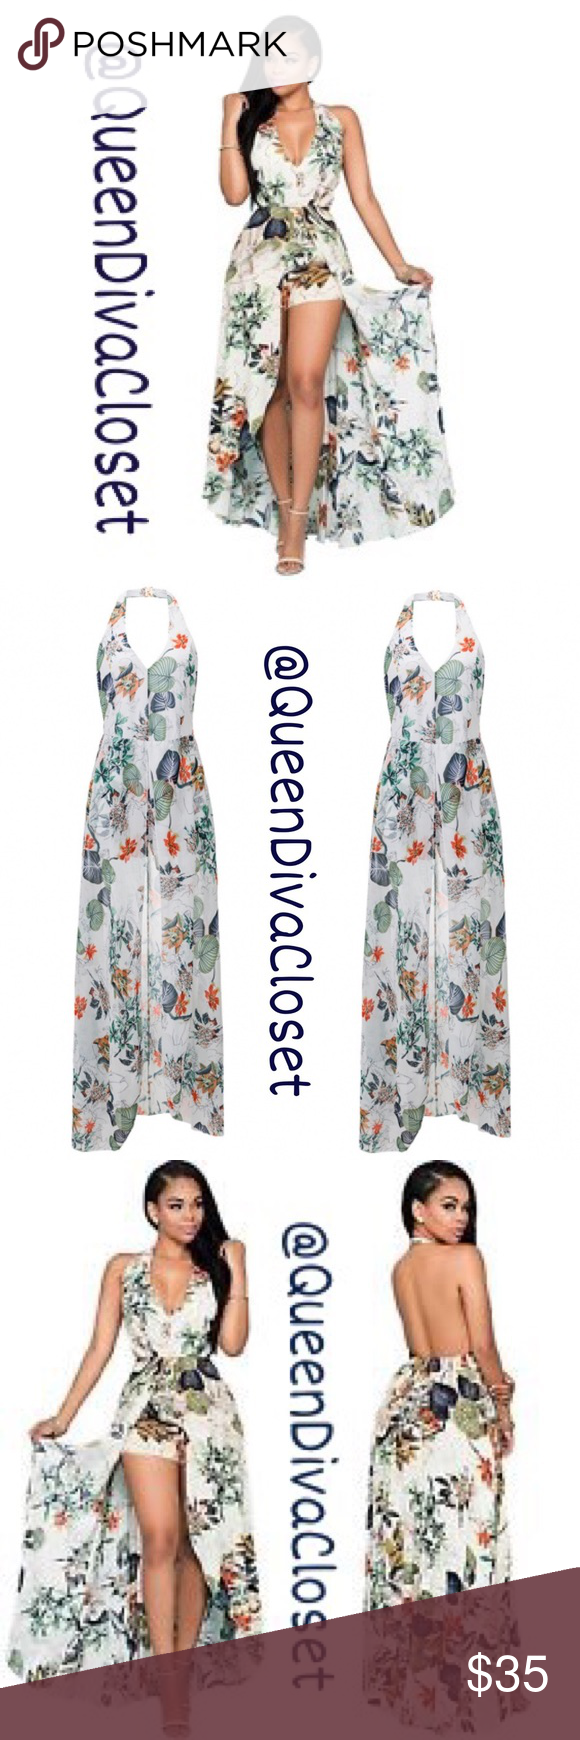 ee9246348c Floral halter short romper maxi hi lo dress L XL Be the center of attention  in this eye catching maxi jumpsuit dress. Features a halter neck with clip  ...